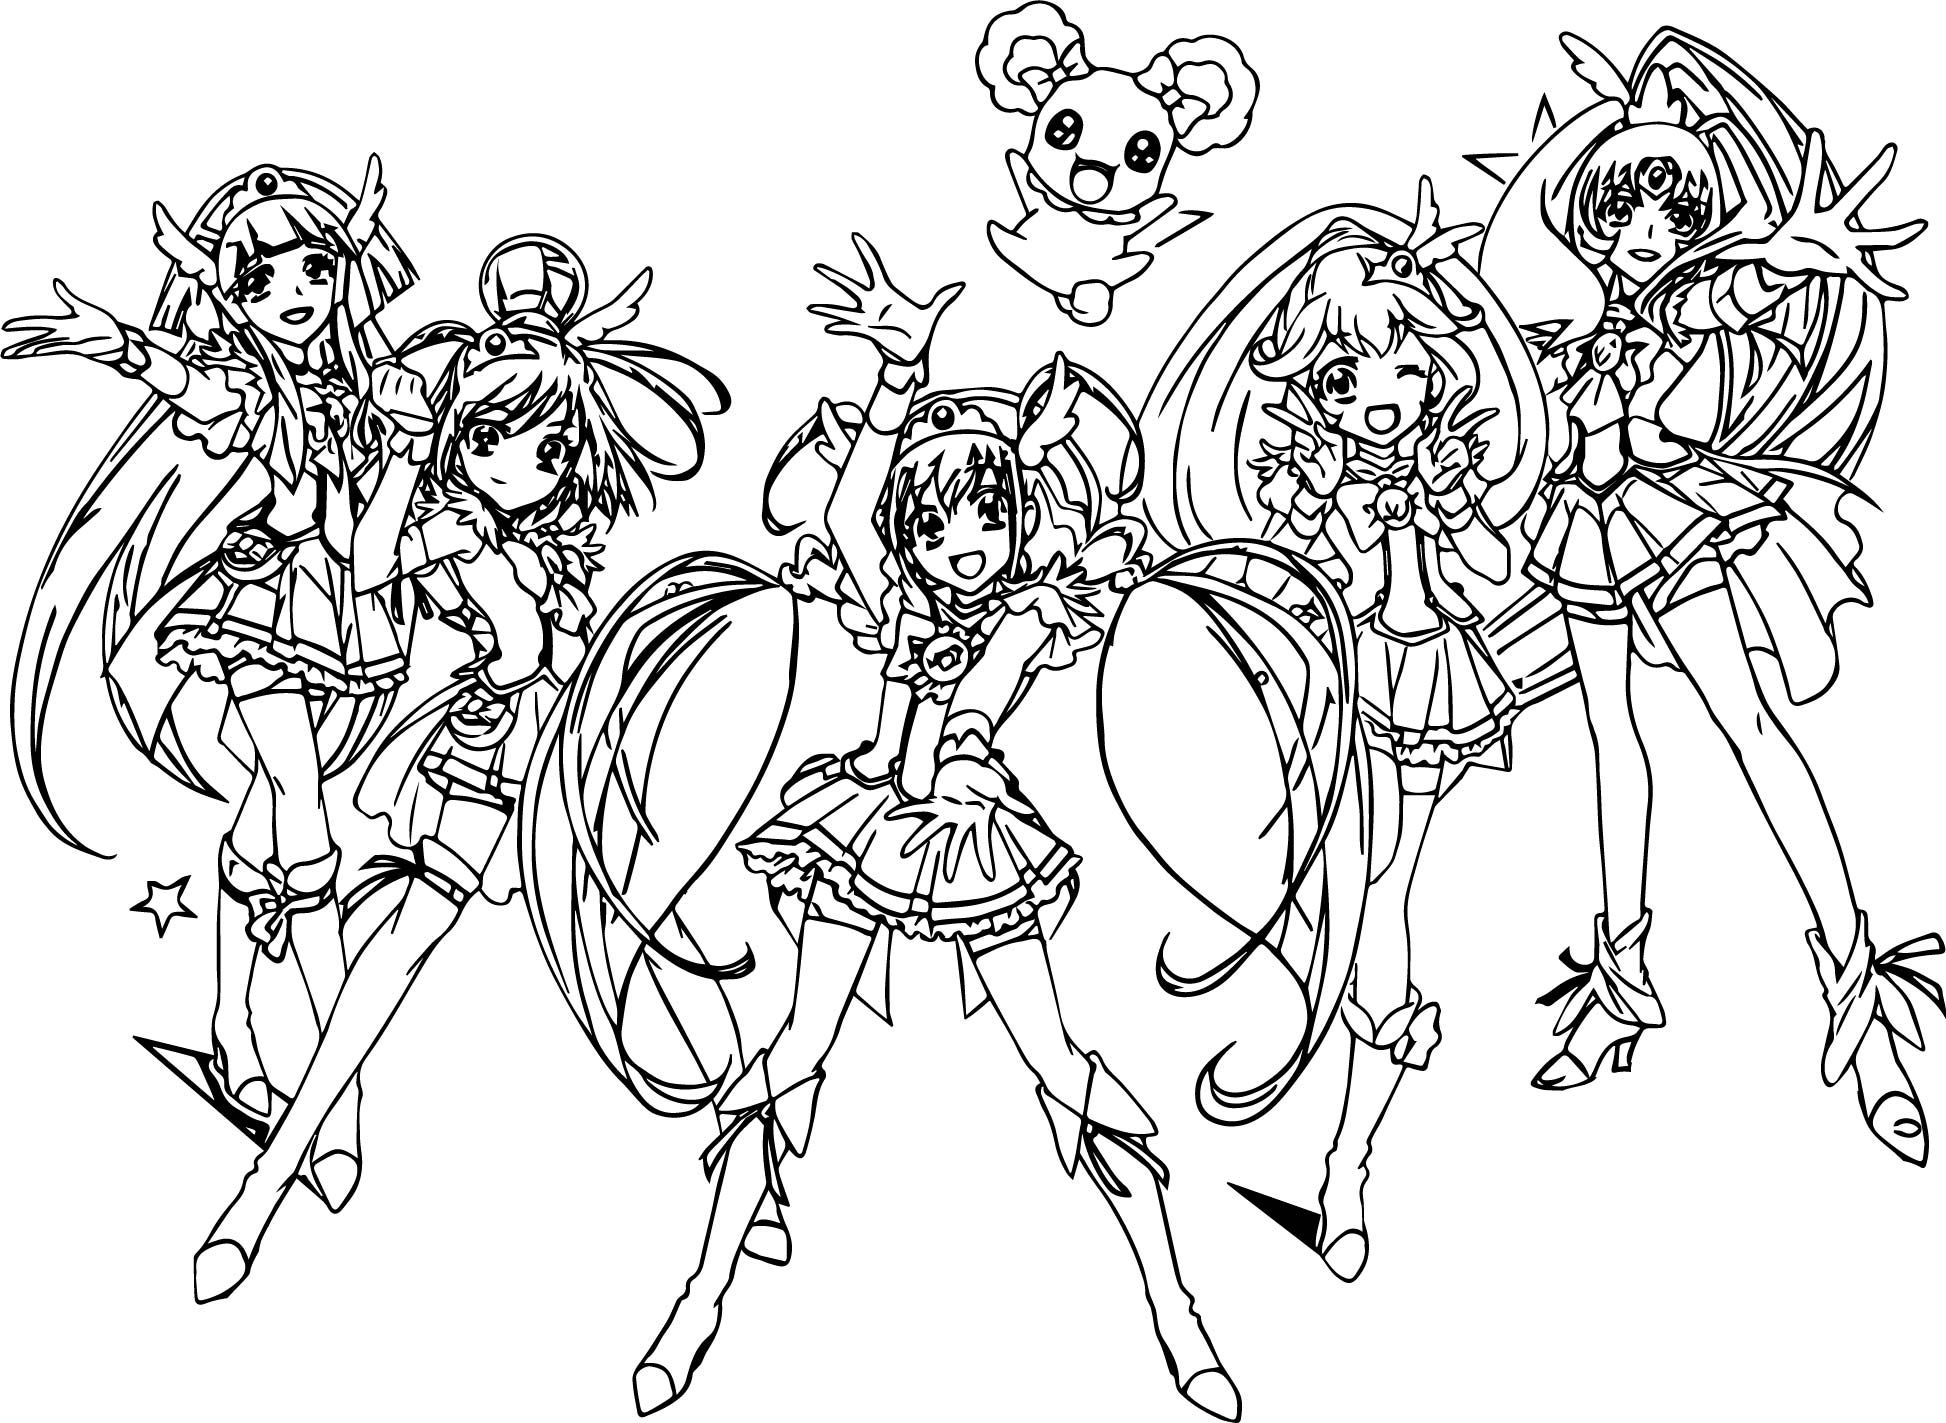 Glitter Force All Group Team Coloring Page Glitter Force Coloring Pages Pretty Images